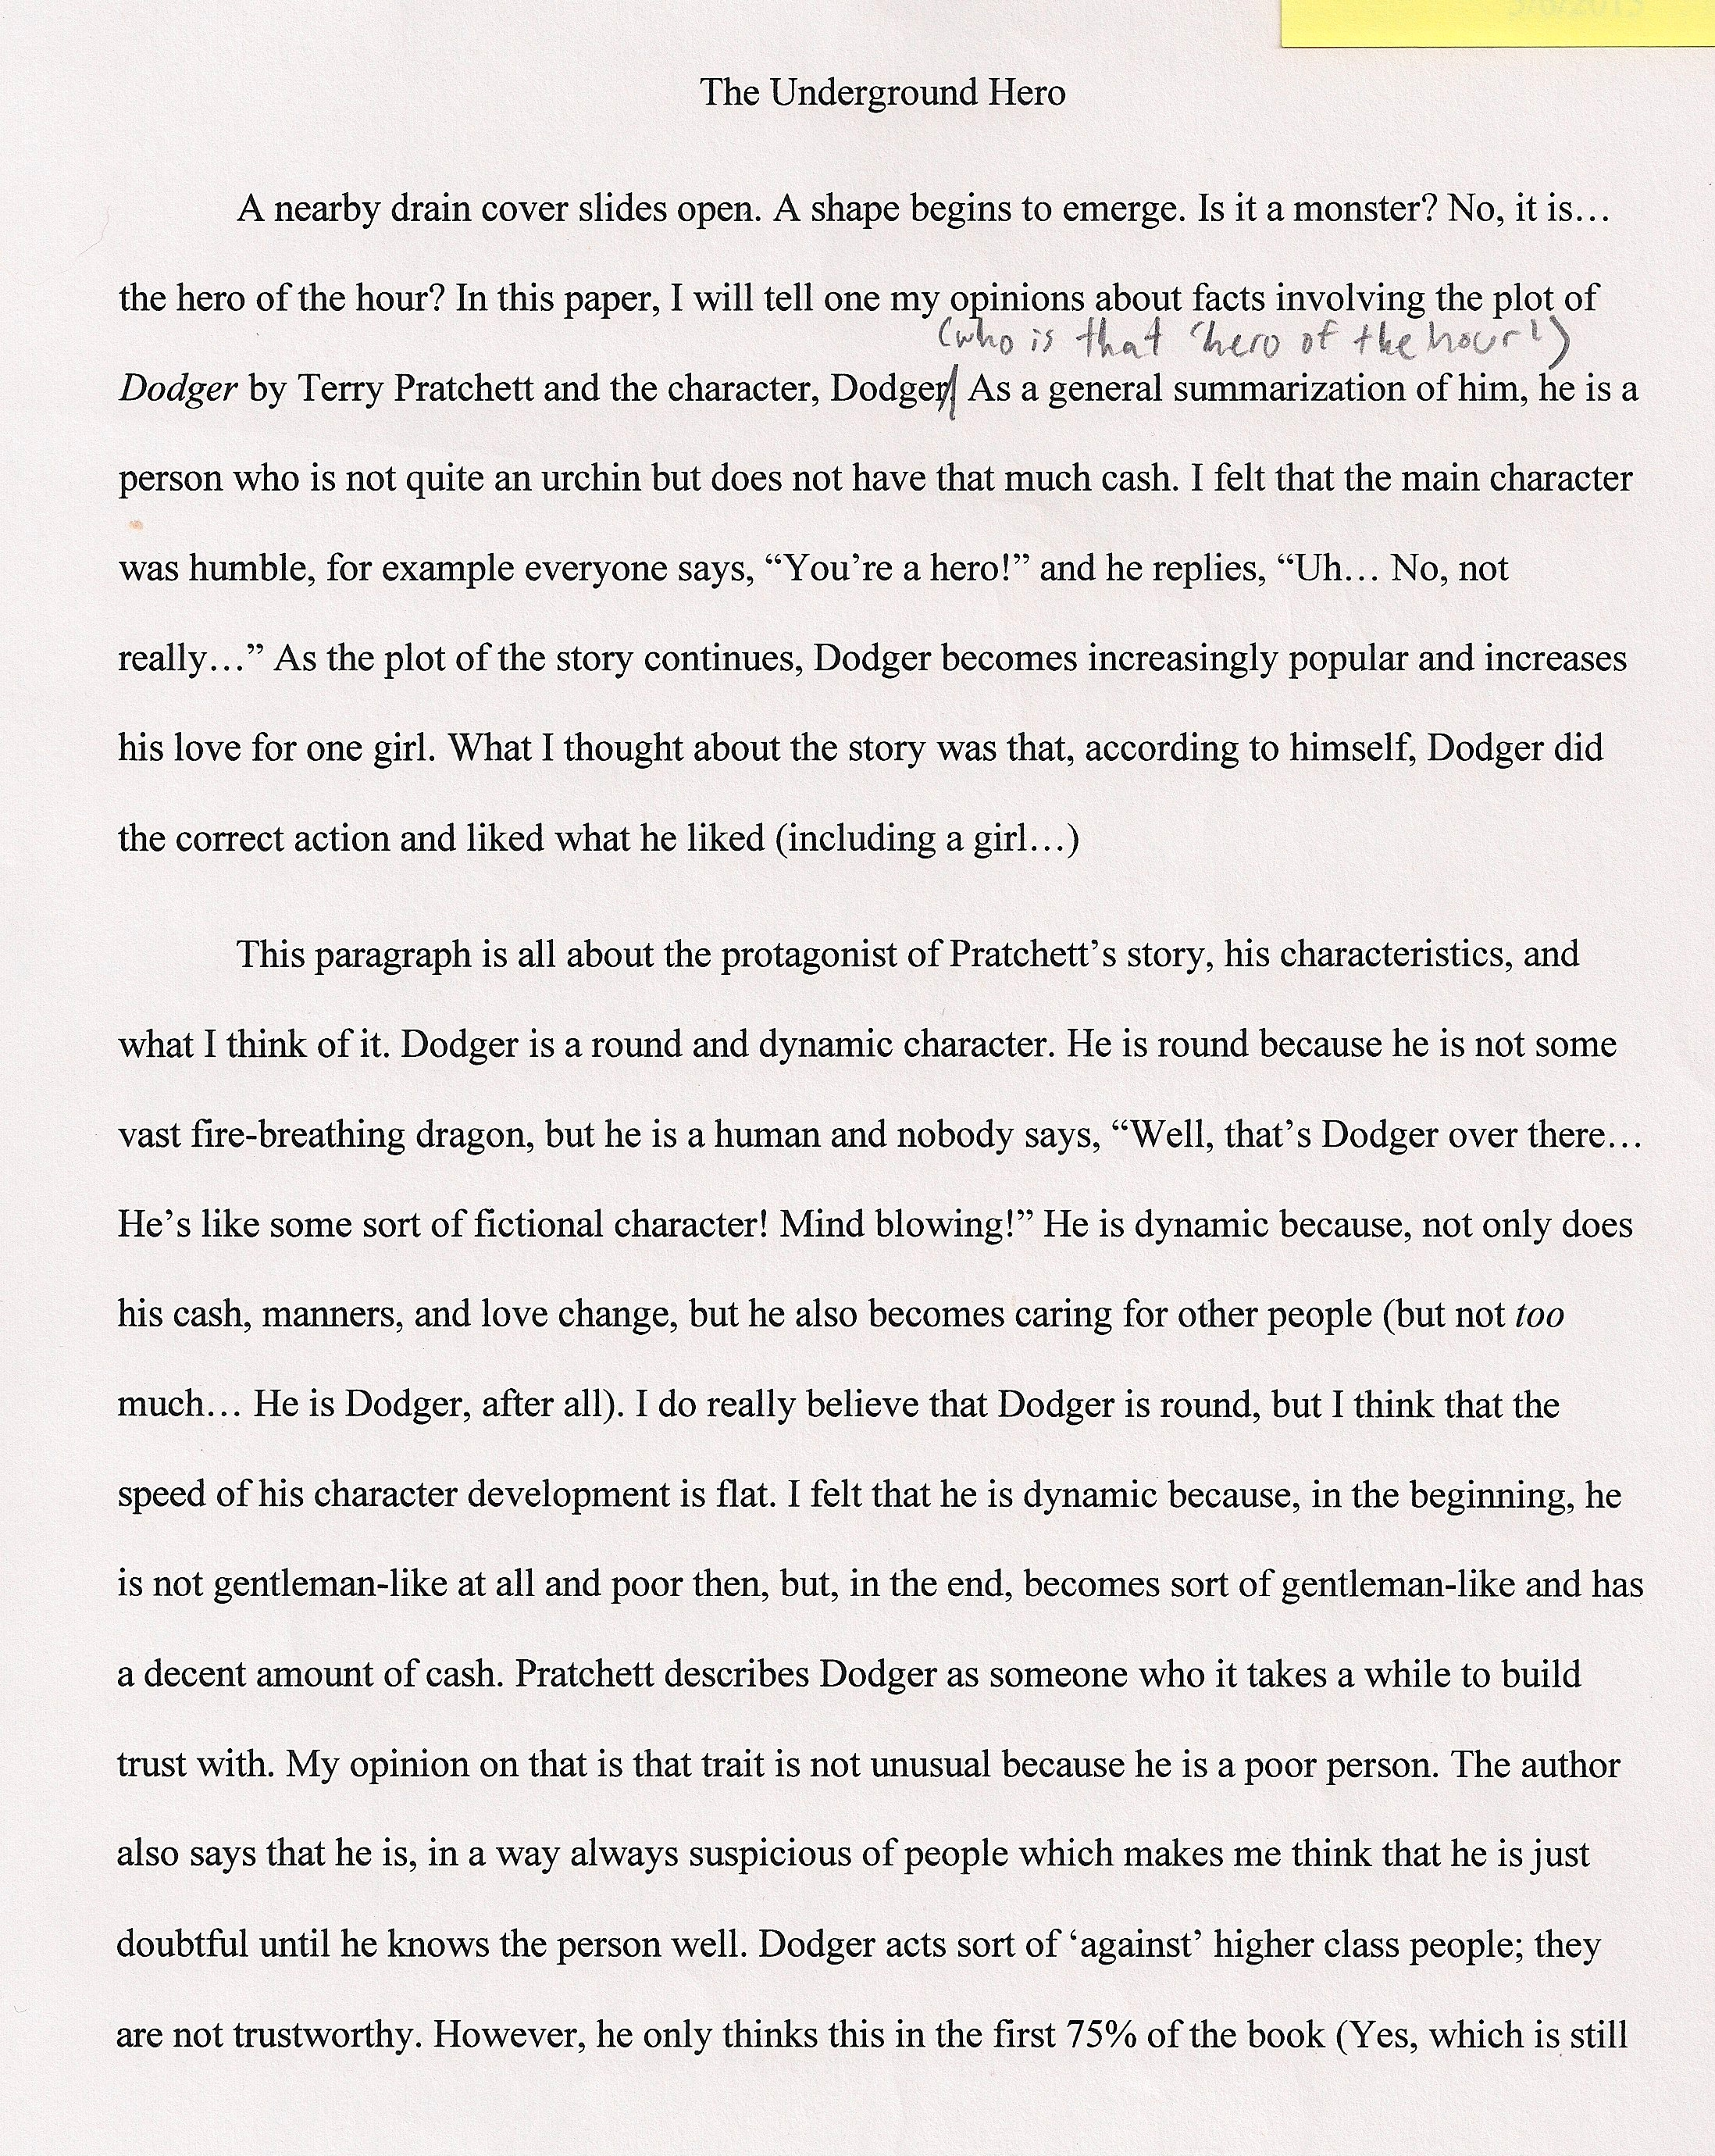 004 Essay Example An About My Hero The Underground Fascinating Heroine Teacher 500 Words A Narrative Full